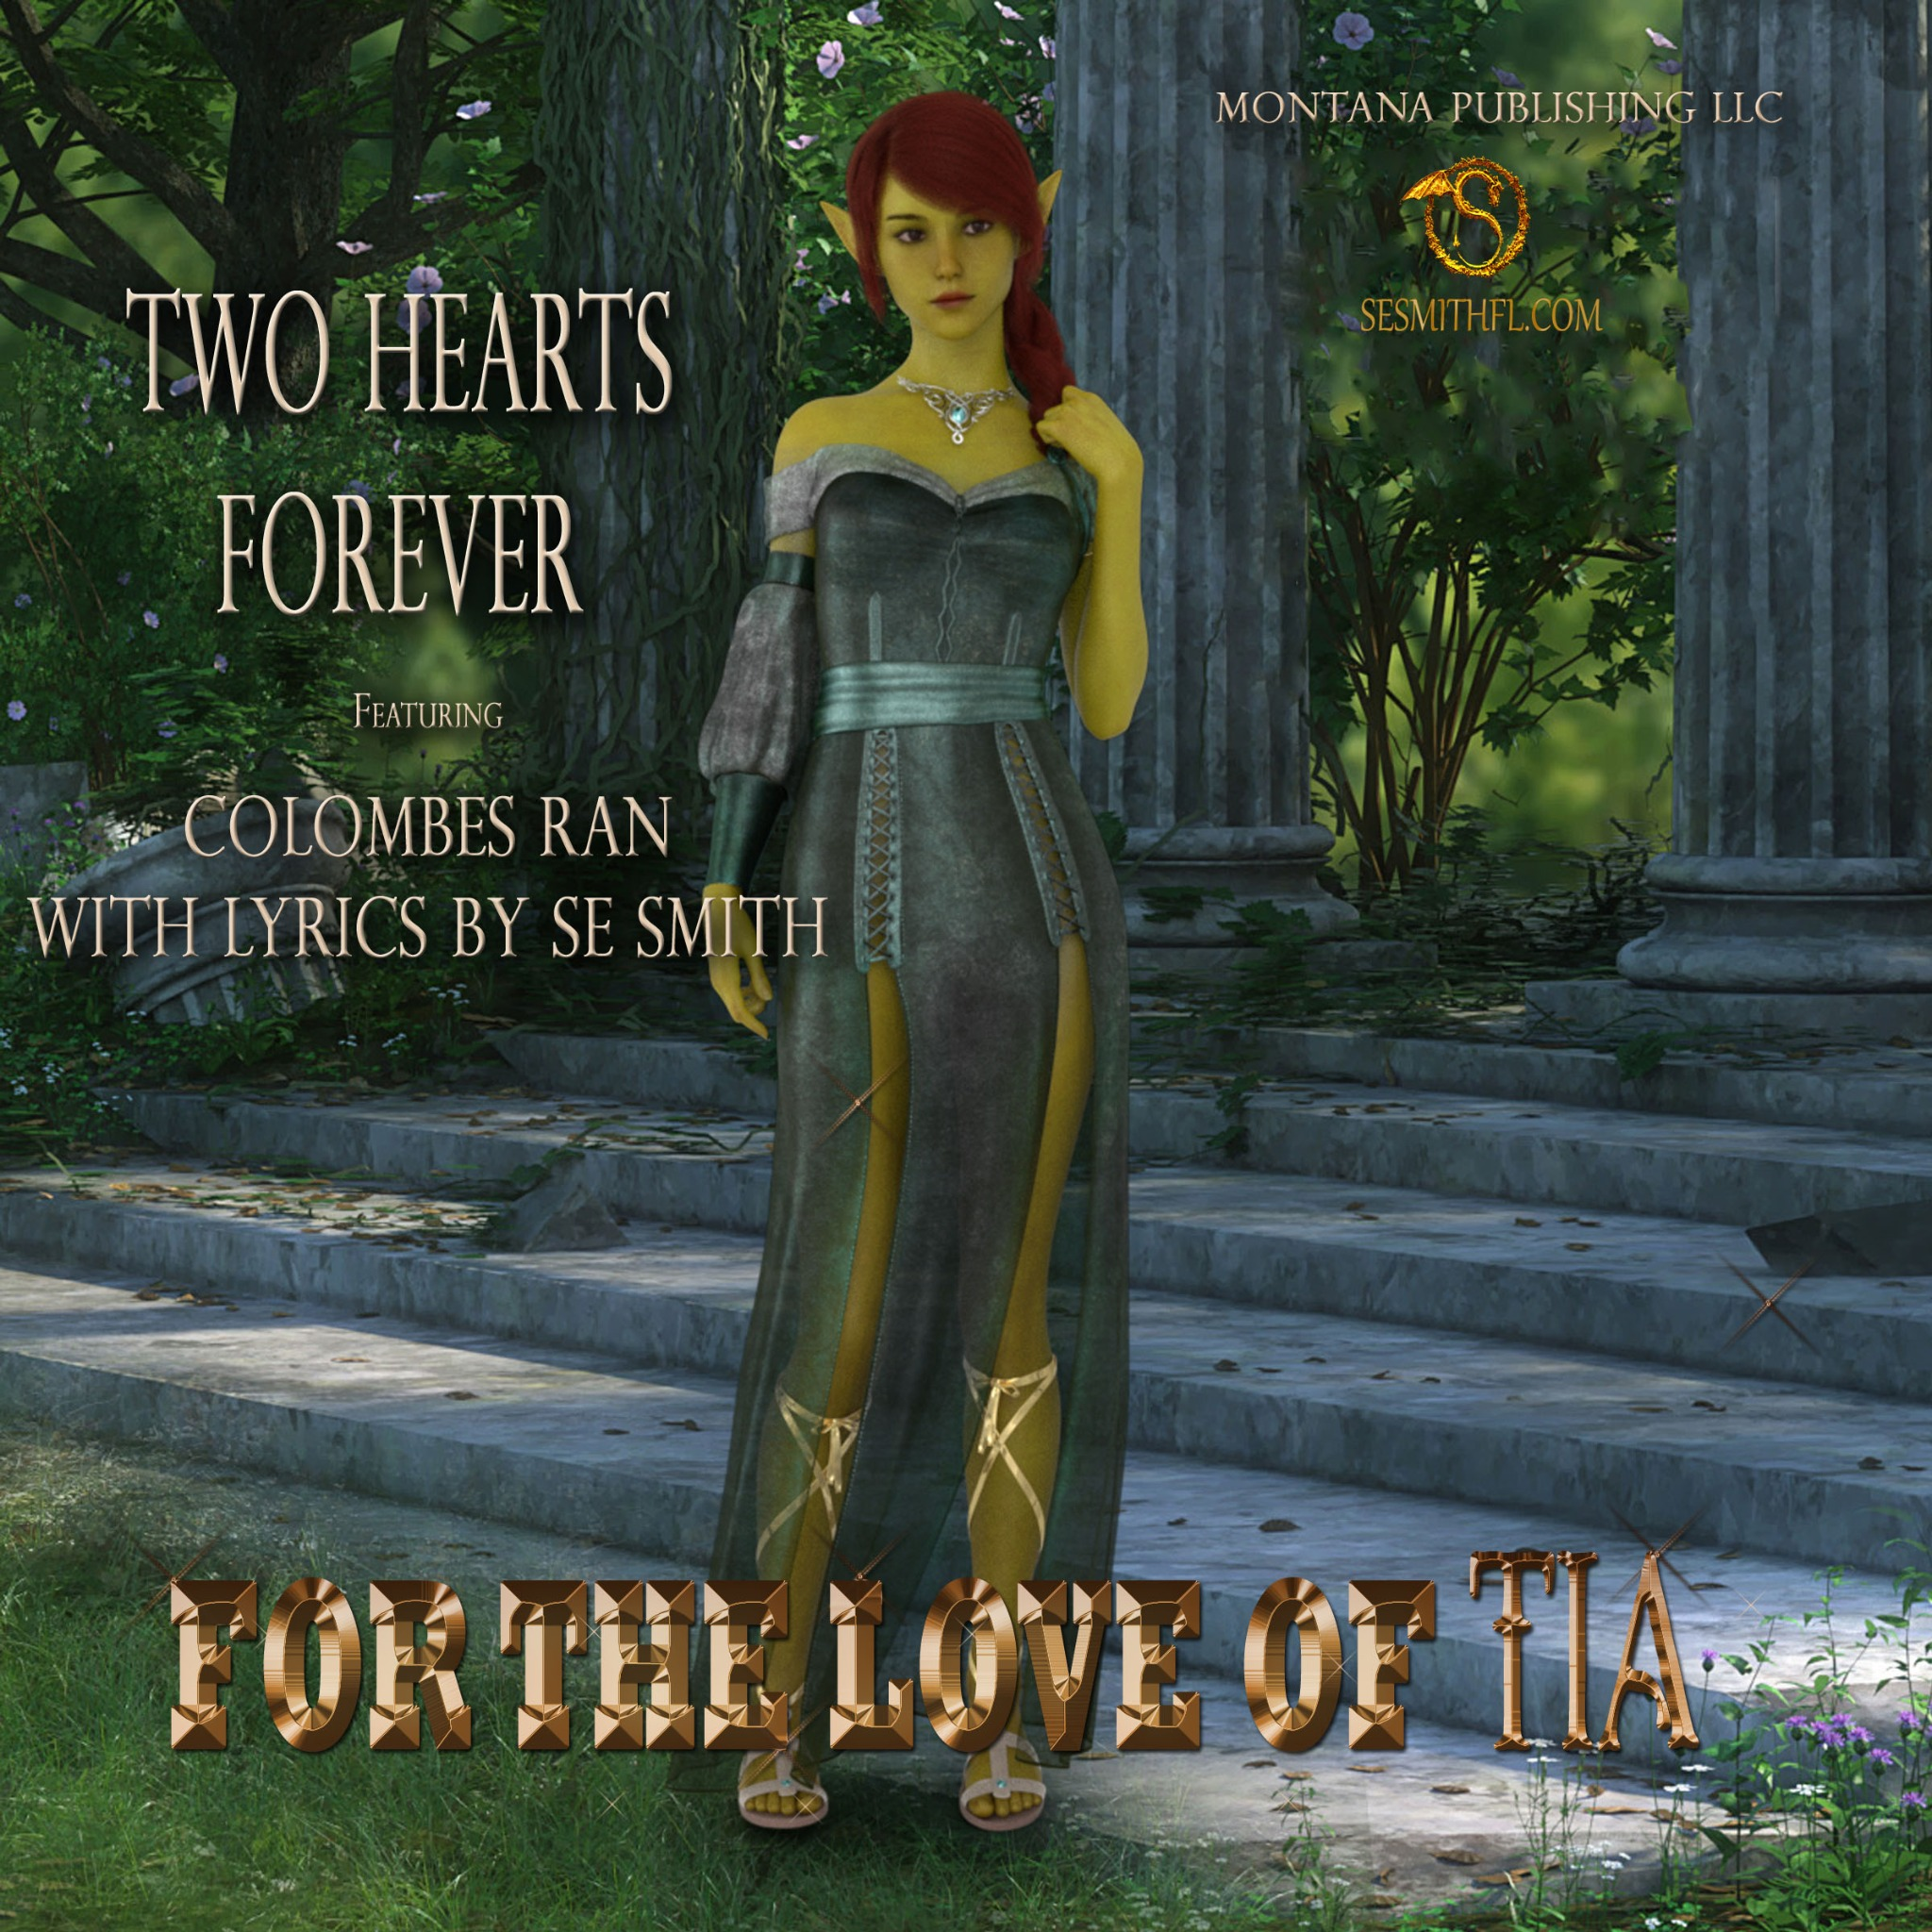 Two Hearts Forever featuring ColombeS Ran; lyrics by SE Smith; Melody by Marvin Focken